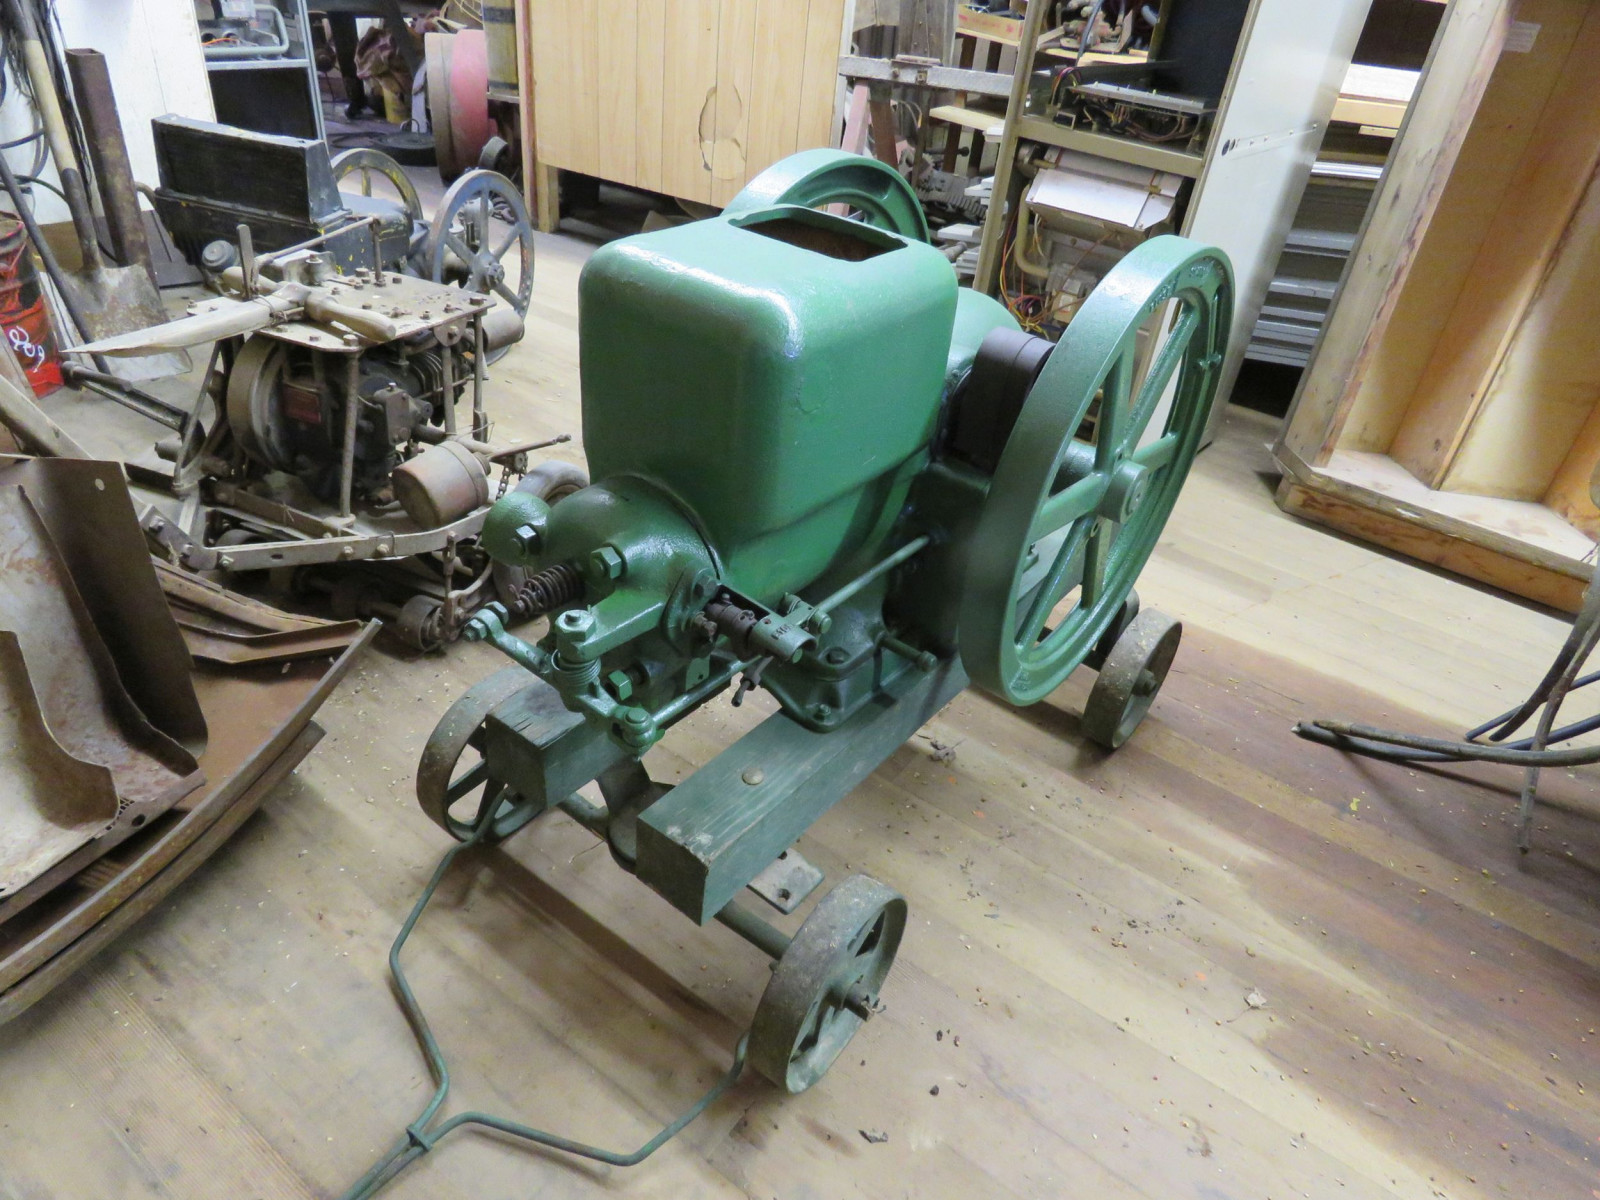 John Deere Type E 3hp Stationary Engine - Image 1